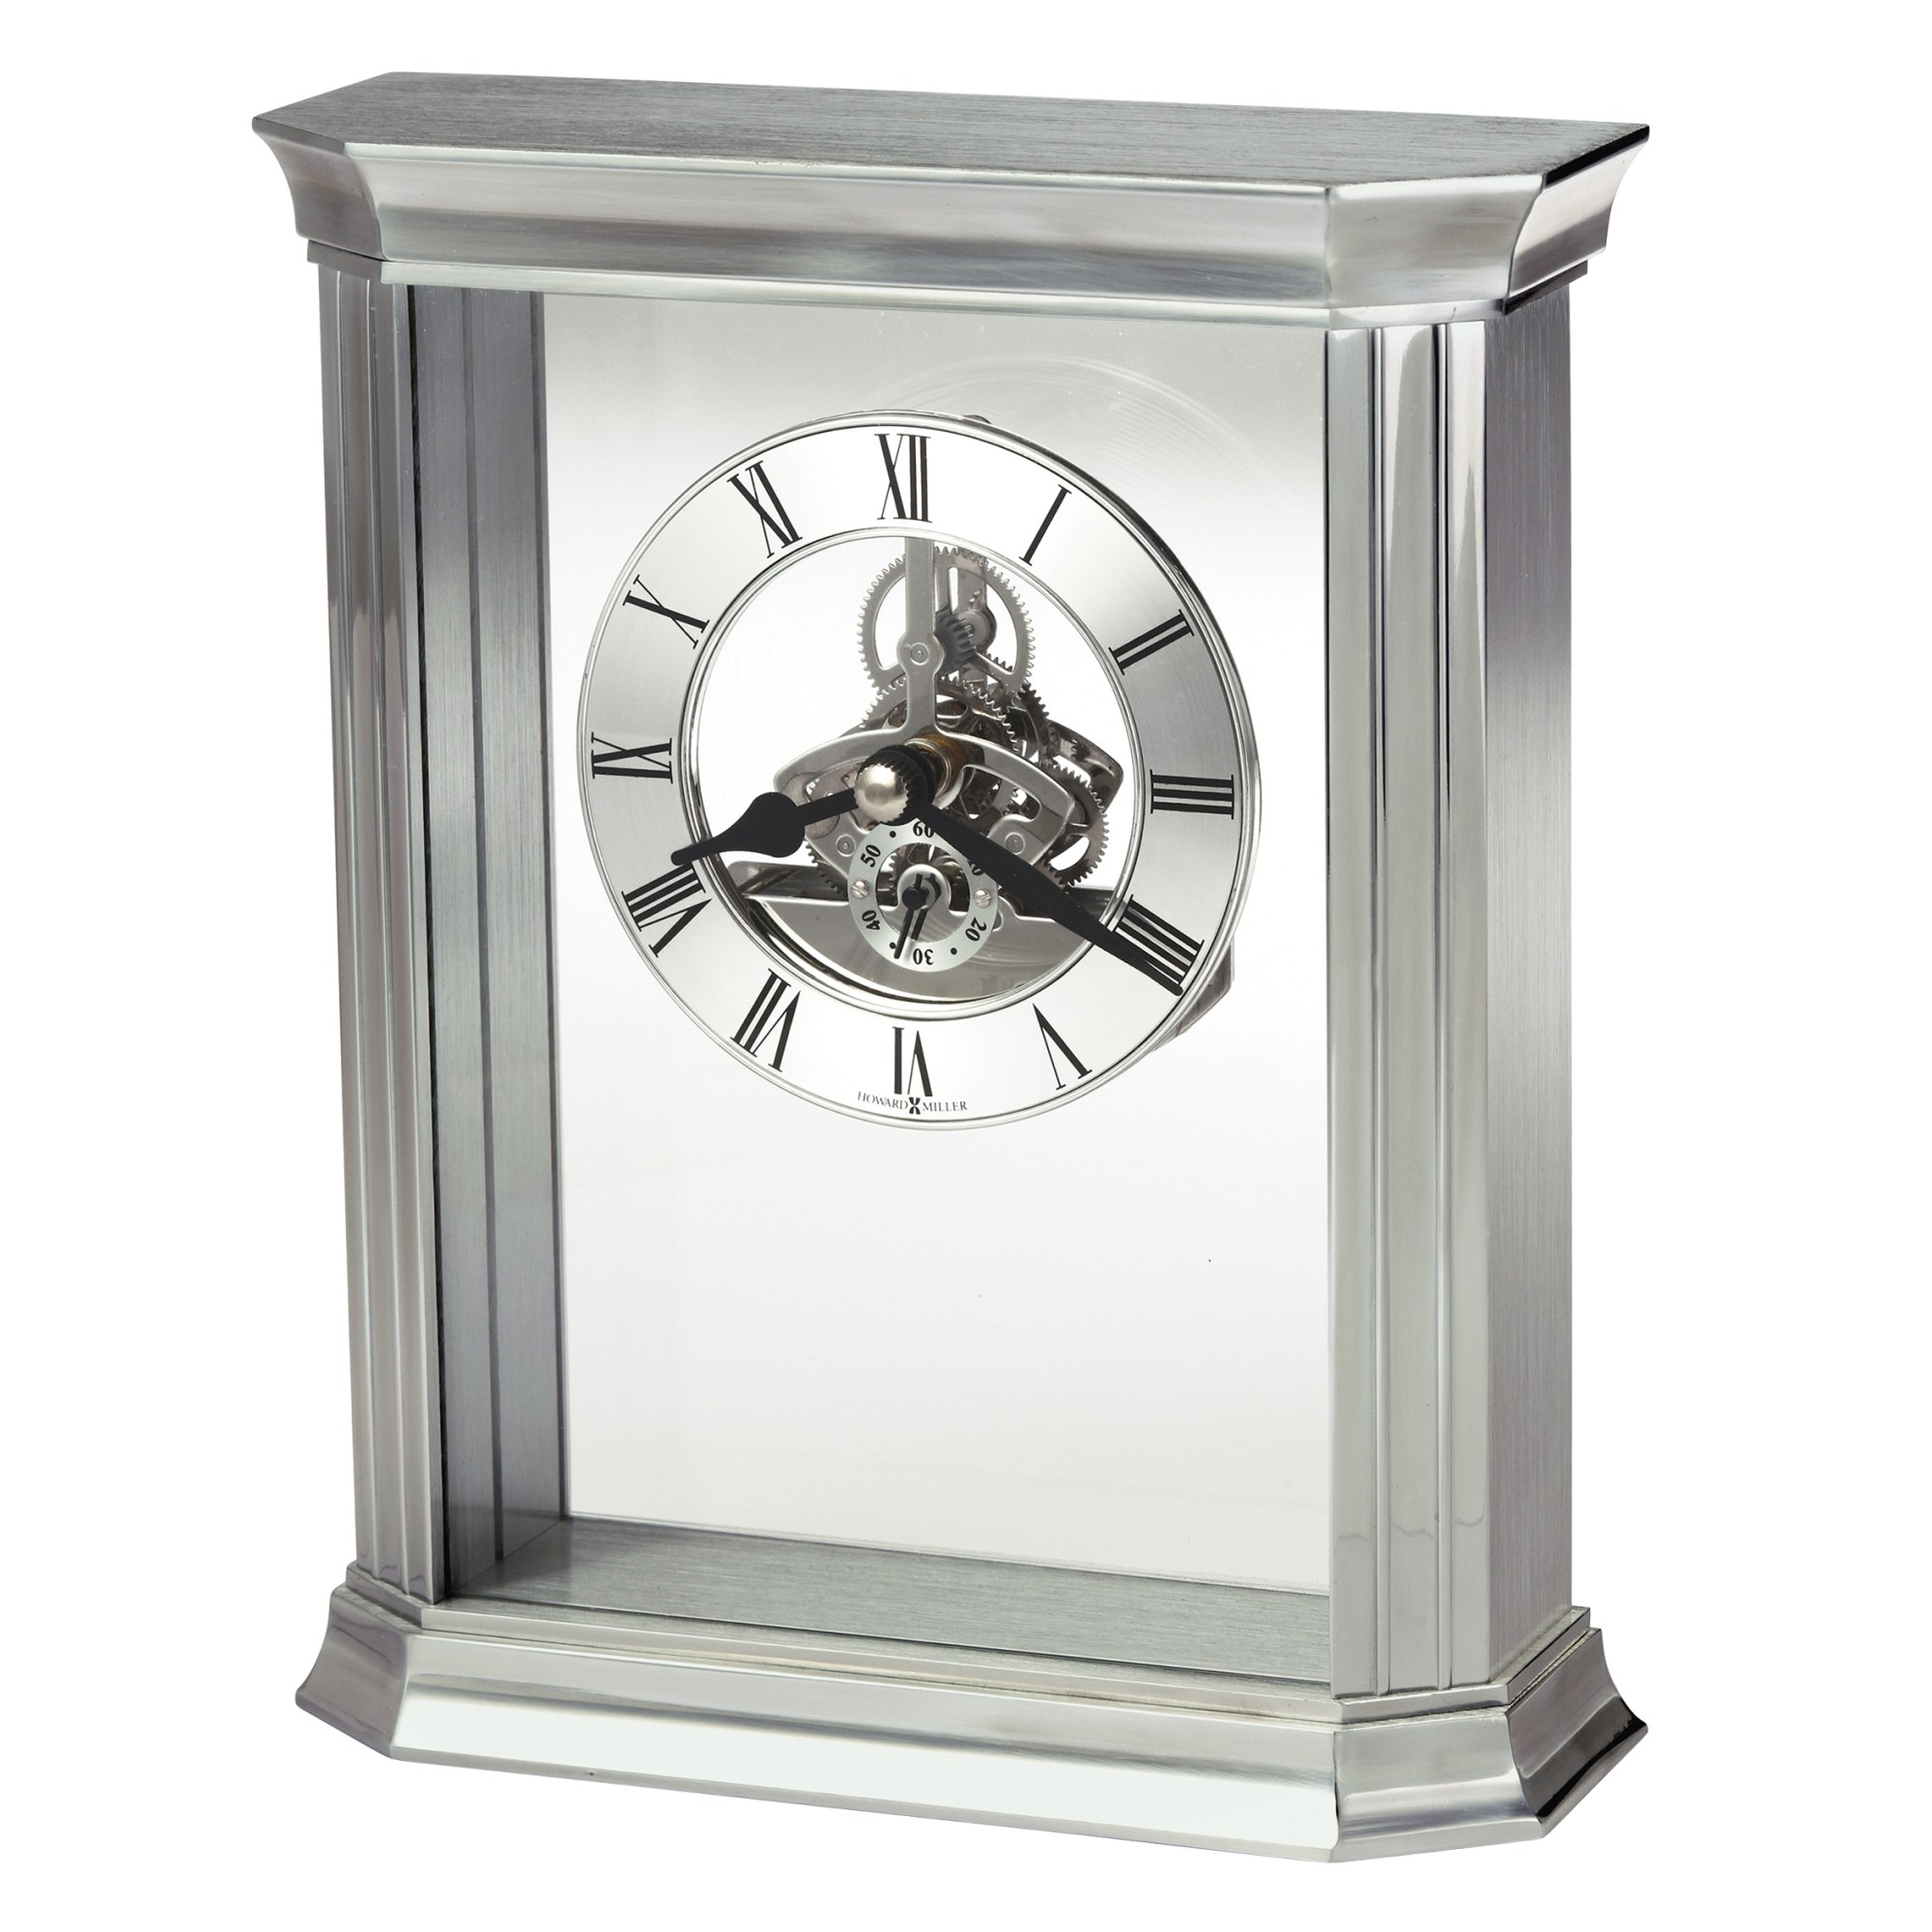 Image for Howard Miller Rothbury Silver Table Clock 645806 from Howard Miller Official Website